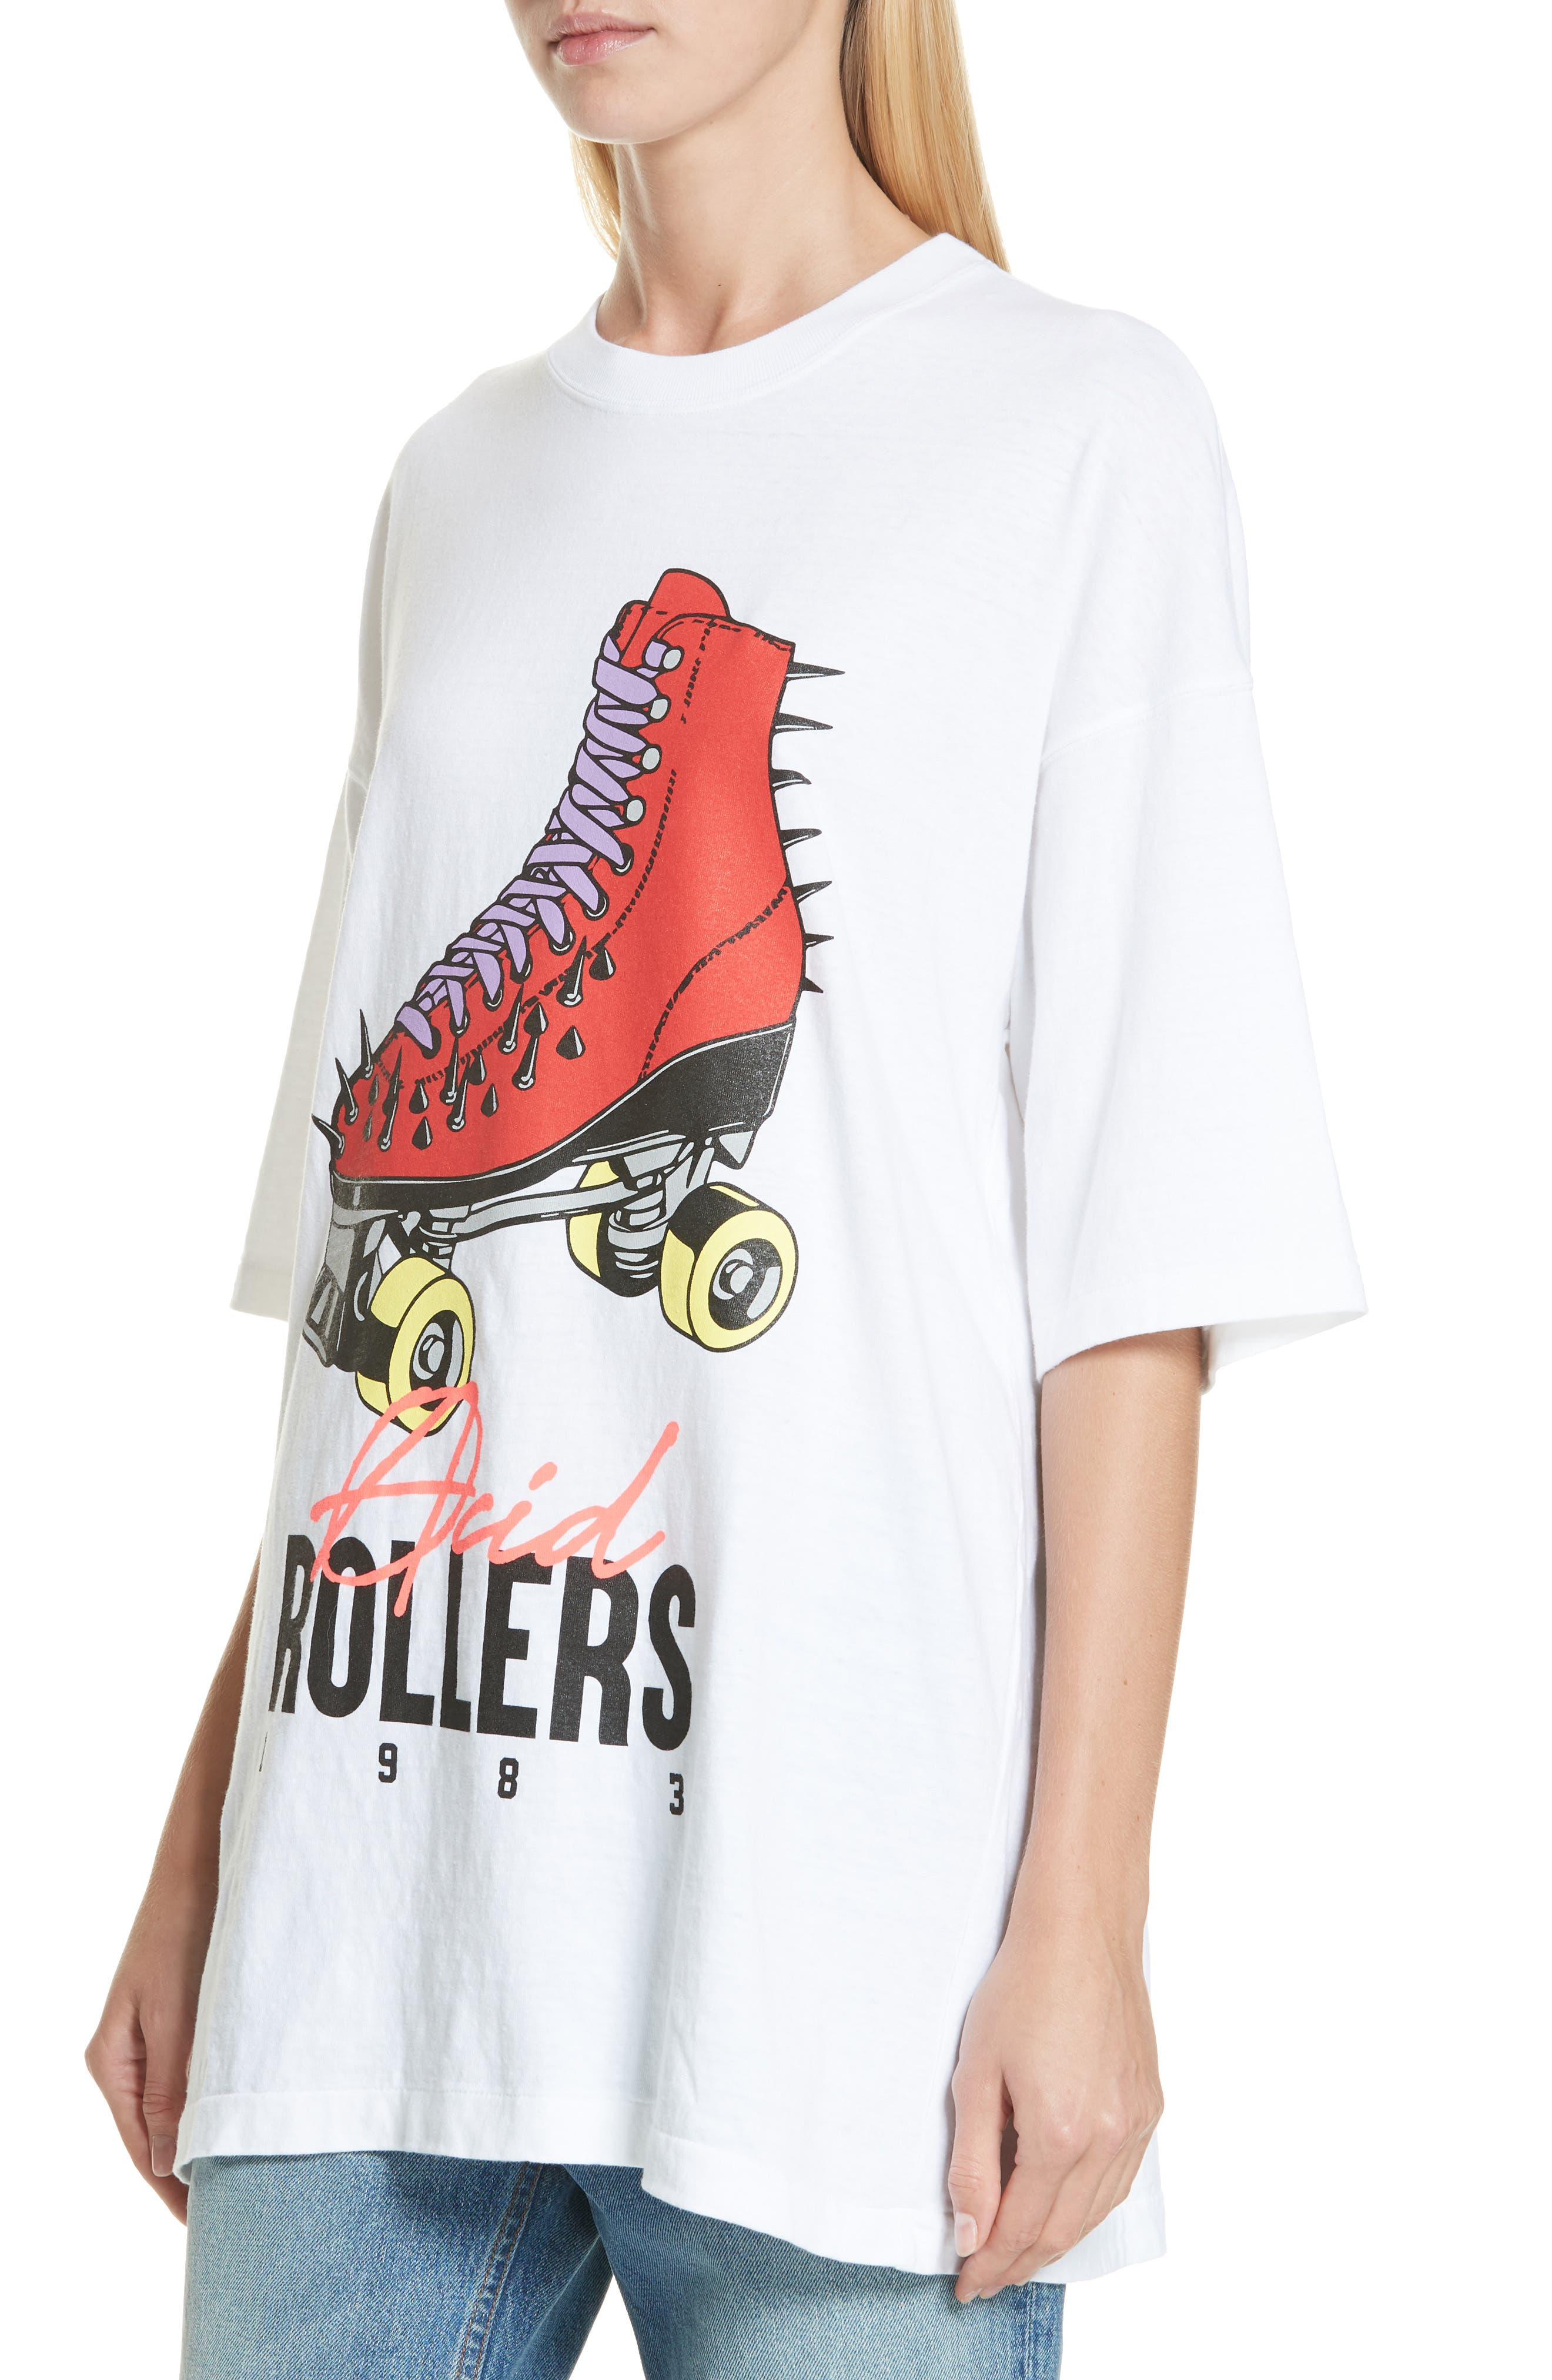 Acid Rollers Tee,                             Alternate thumbnail 4, color,                             A WHITE